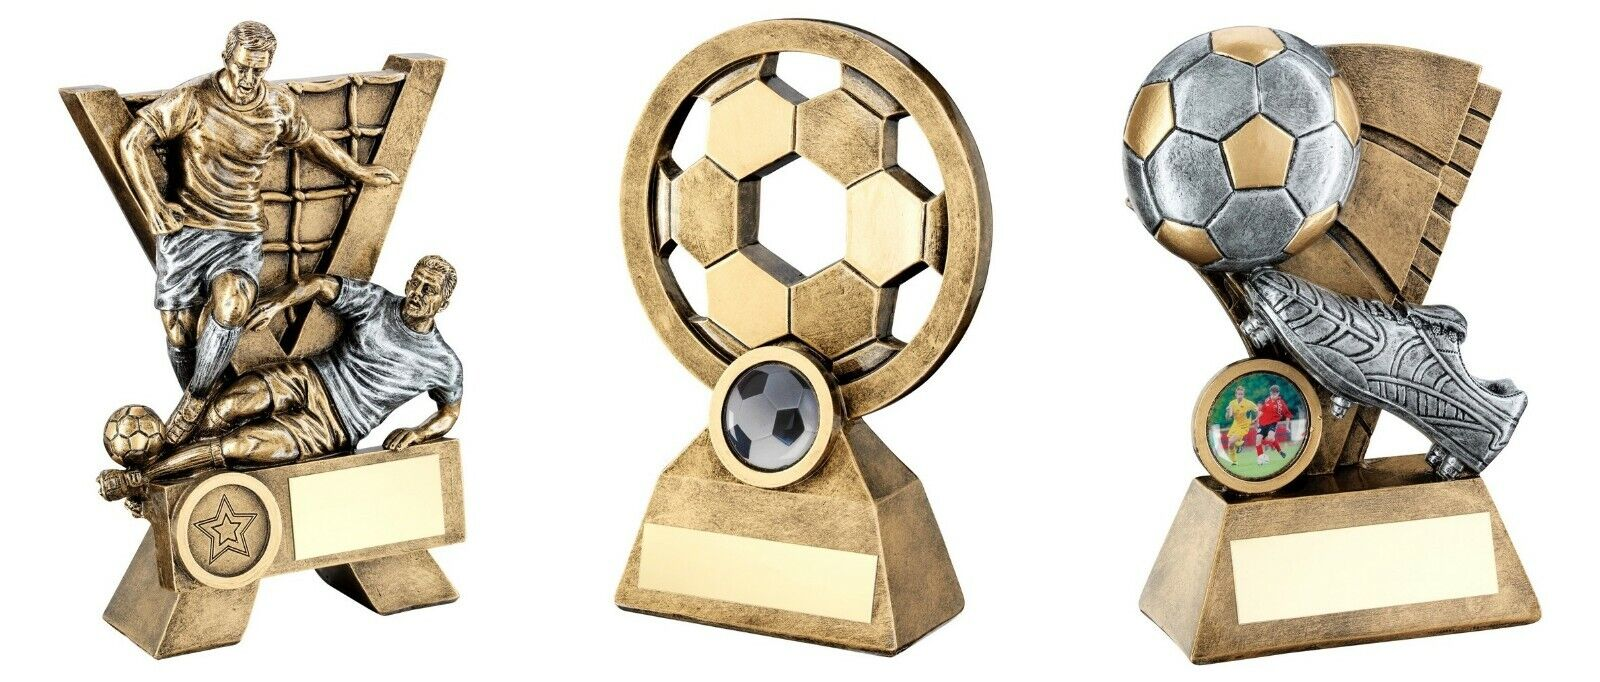 3 x 7 inch Football Trophy Awards engraved post free (RRP .48)